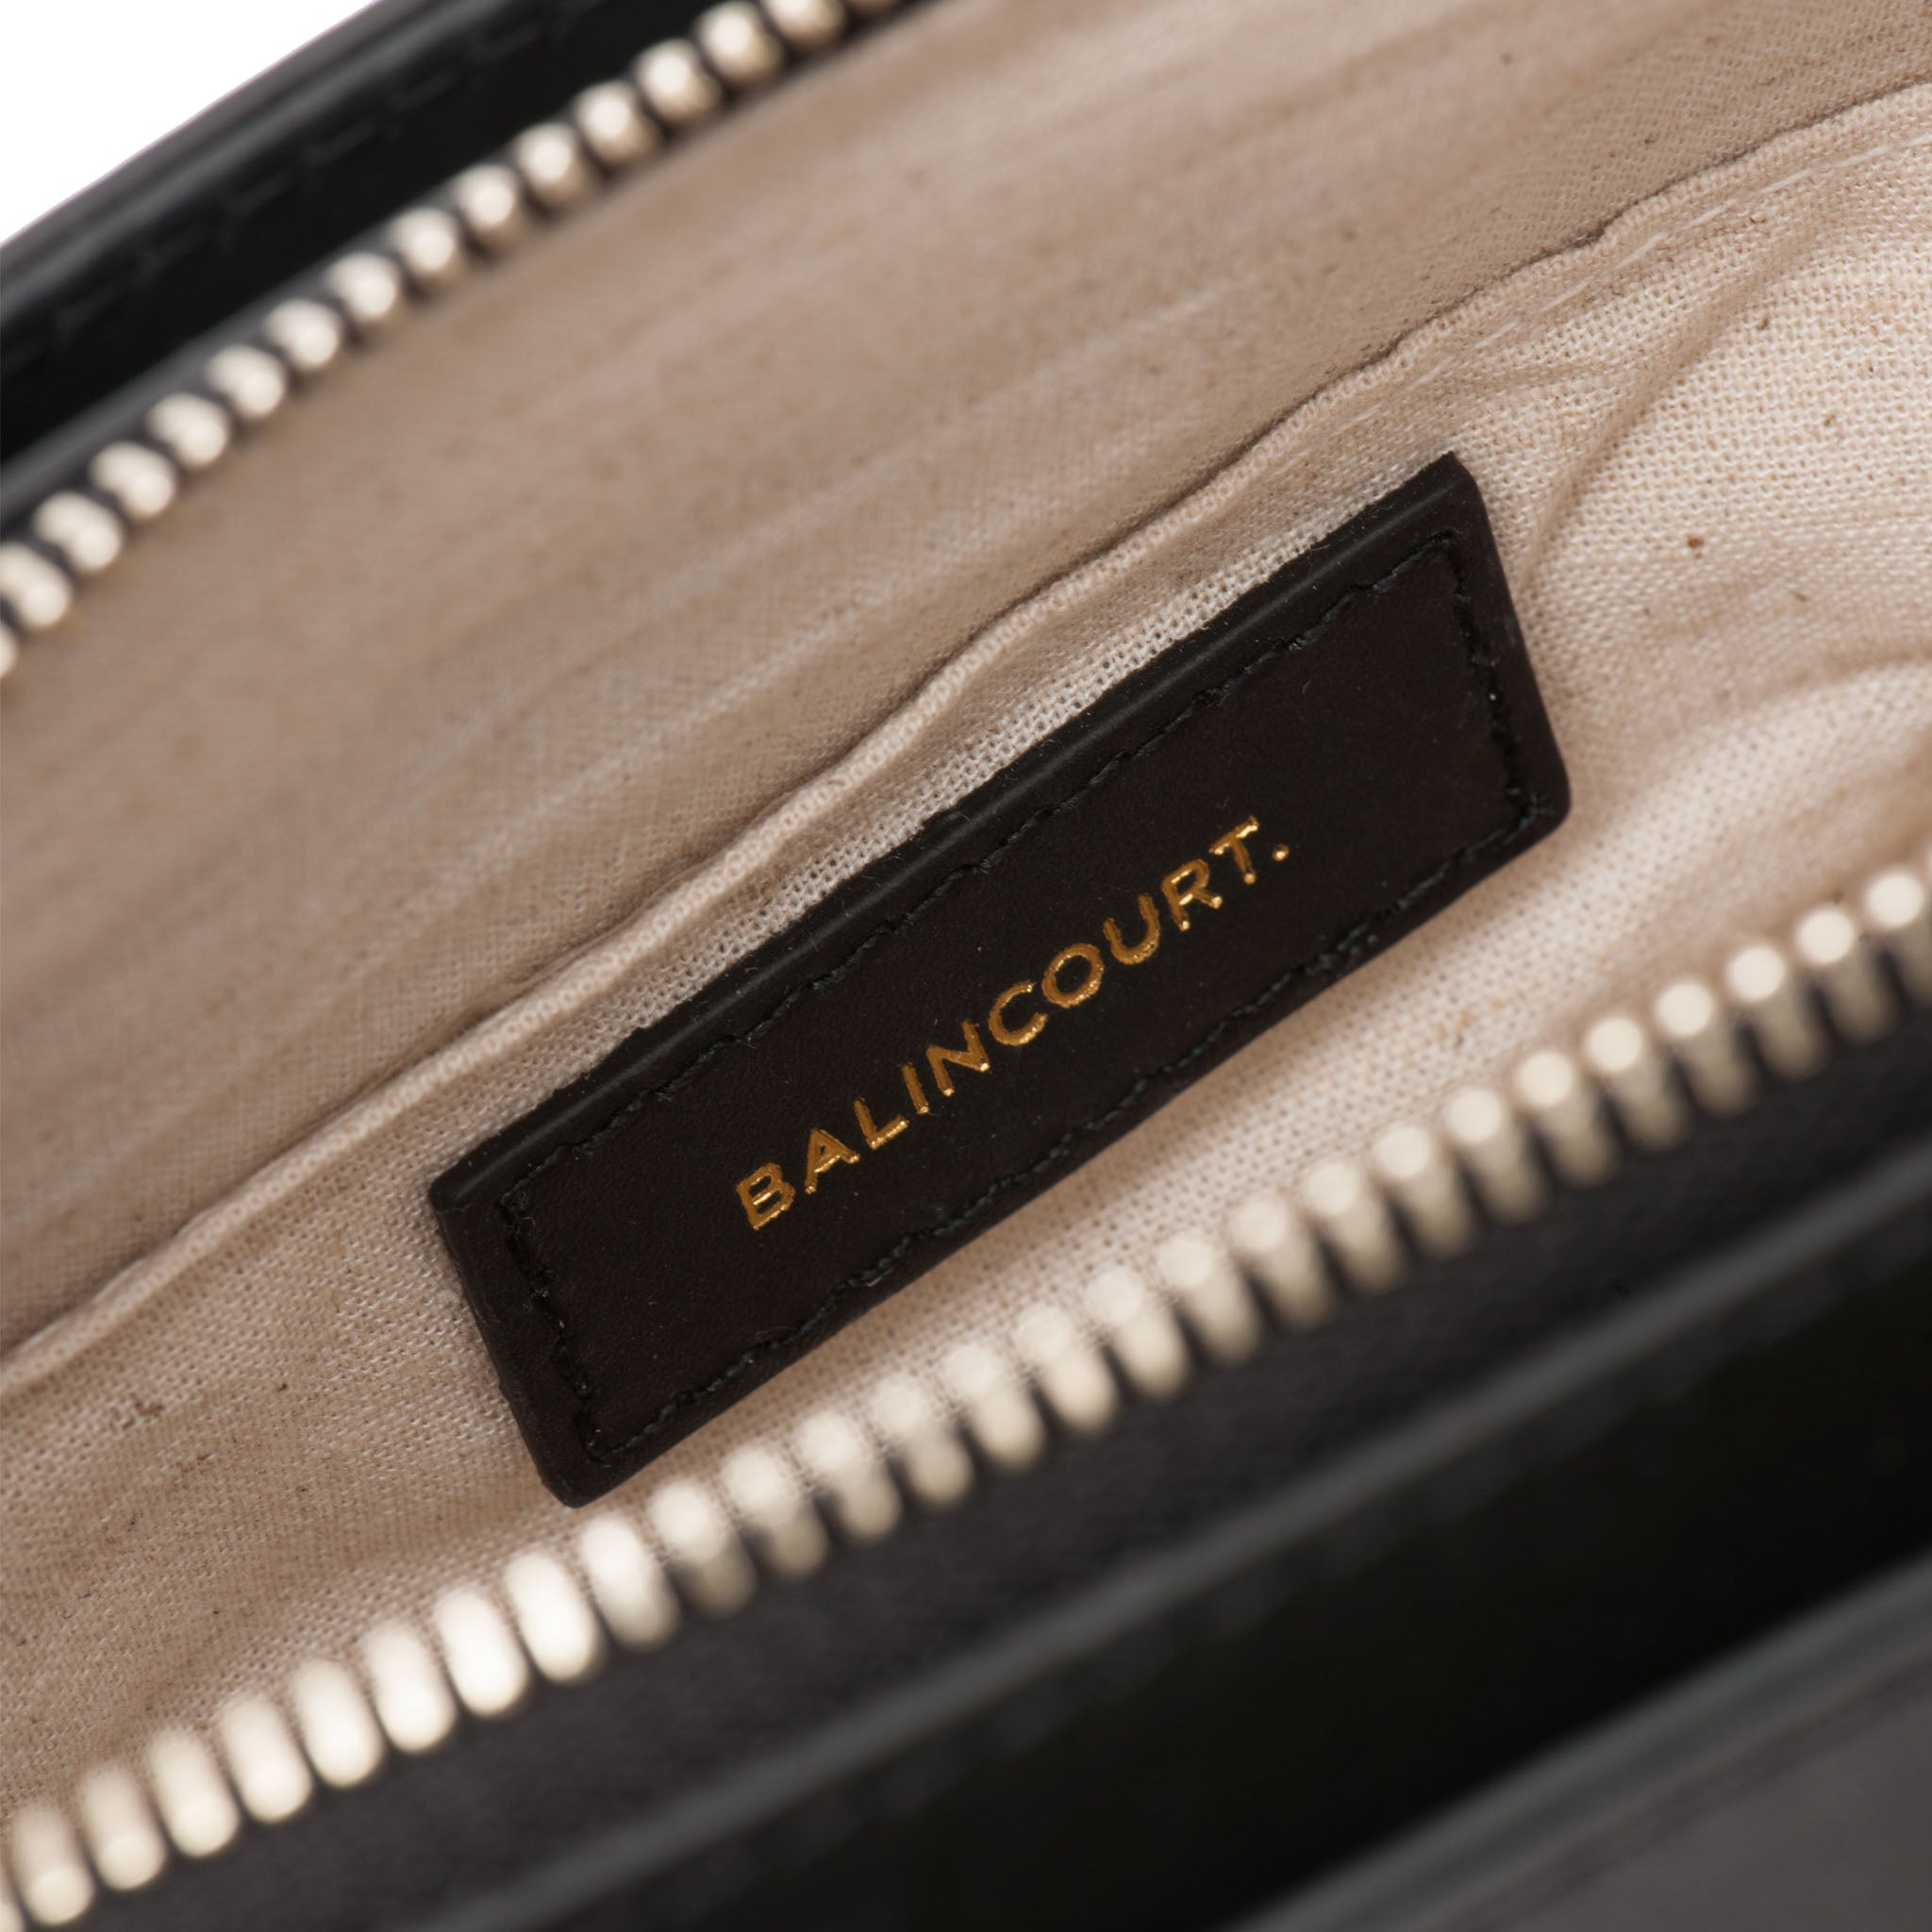 Balincourt Leather Sling Bag Byron Bay Australia